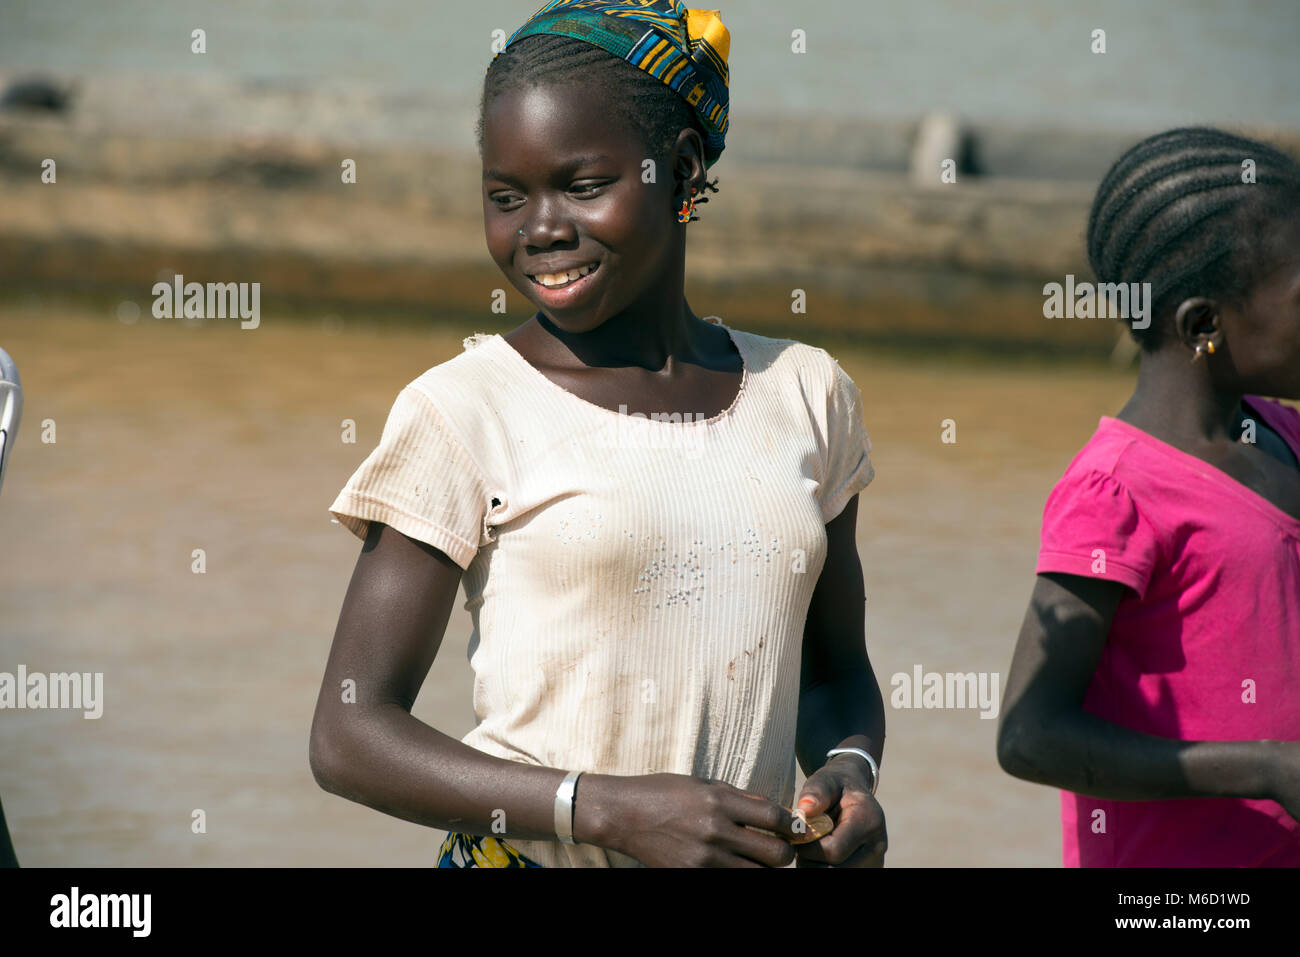 A young, indigenous, ethnic teenaged Bozo tribal girl, smiling, wearing a t-shirt. Mali, West Africa. - Stock Image